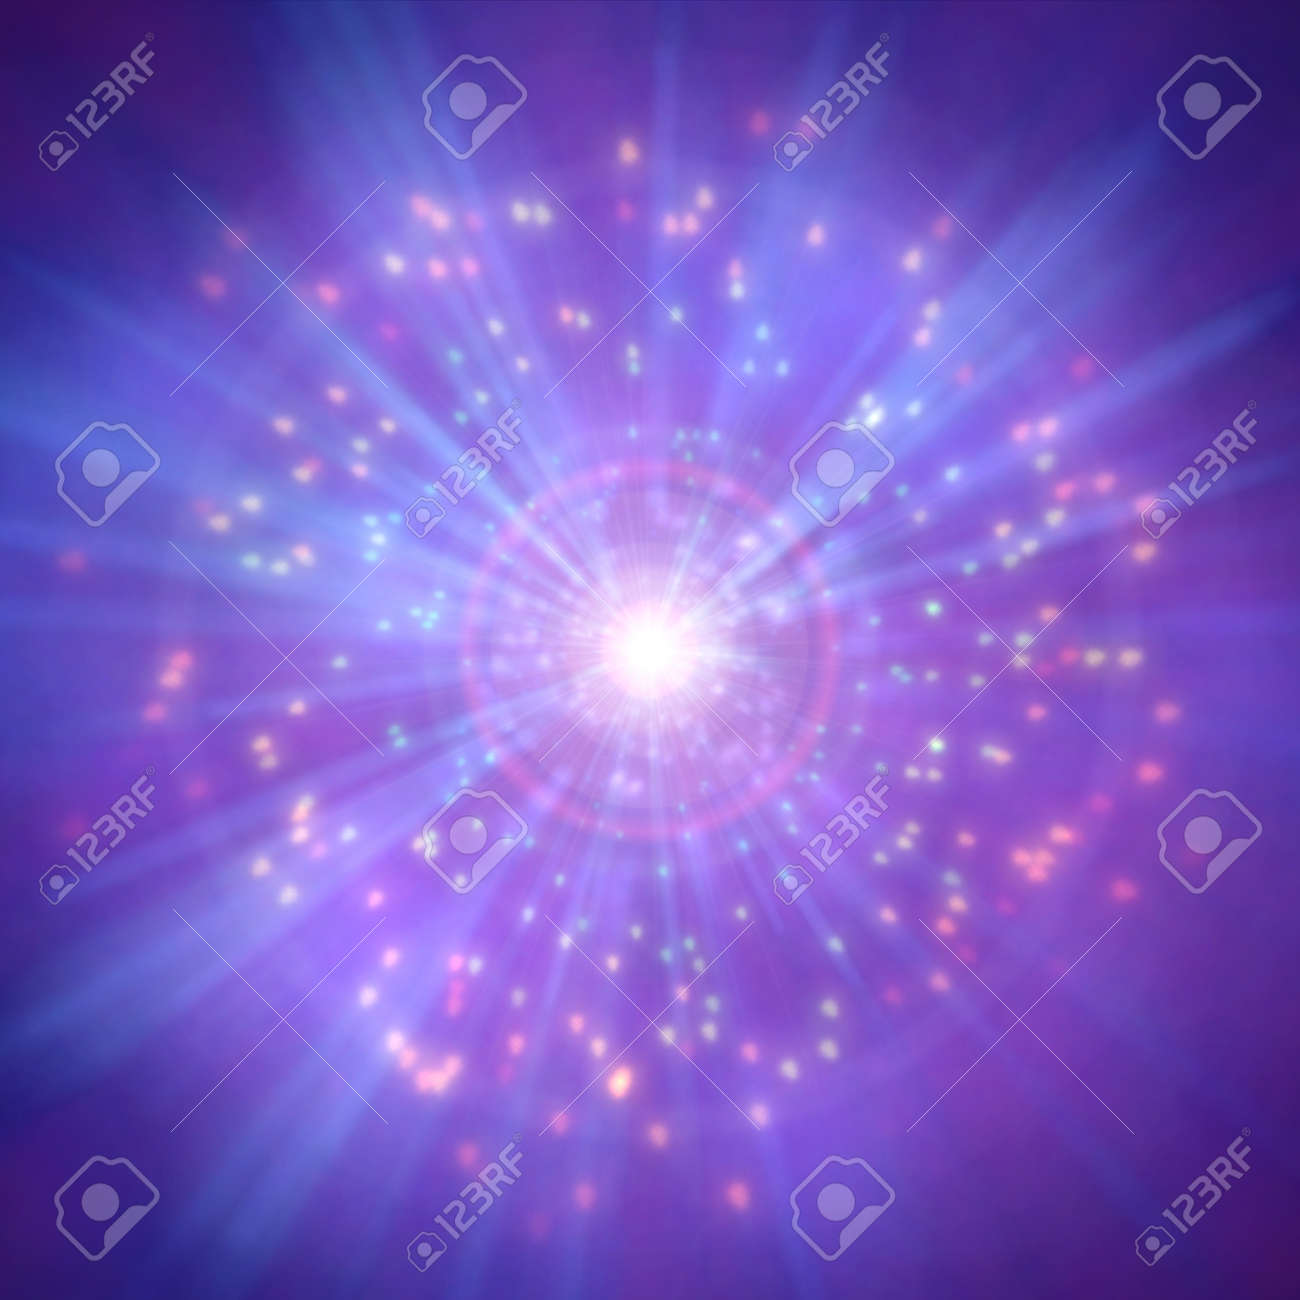 Space background realistic colorful cosmos, abstract background - 151298889